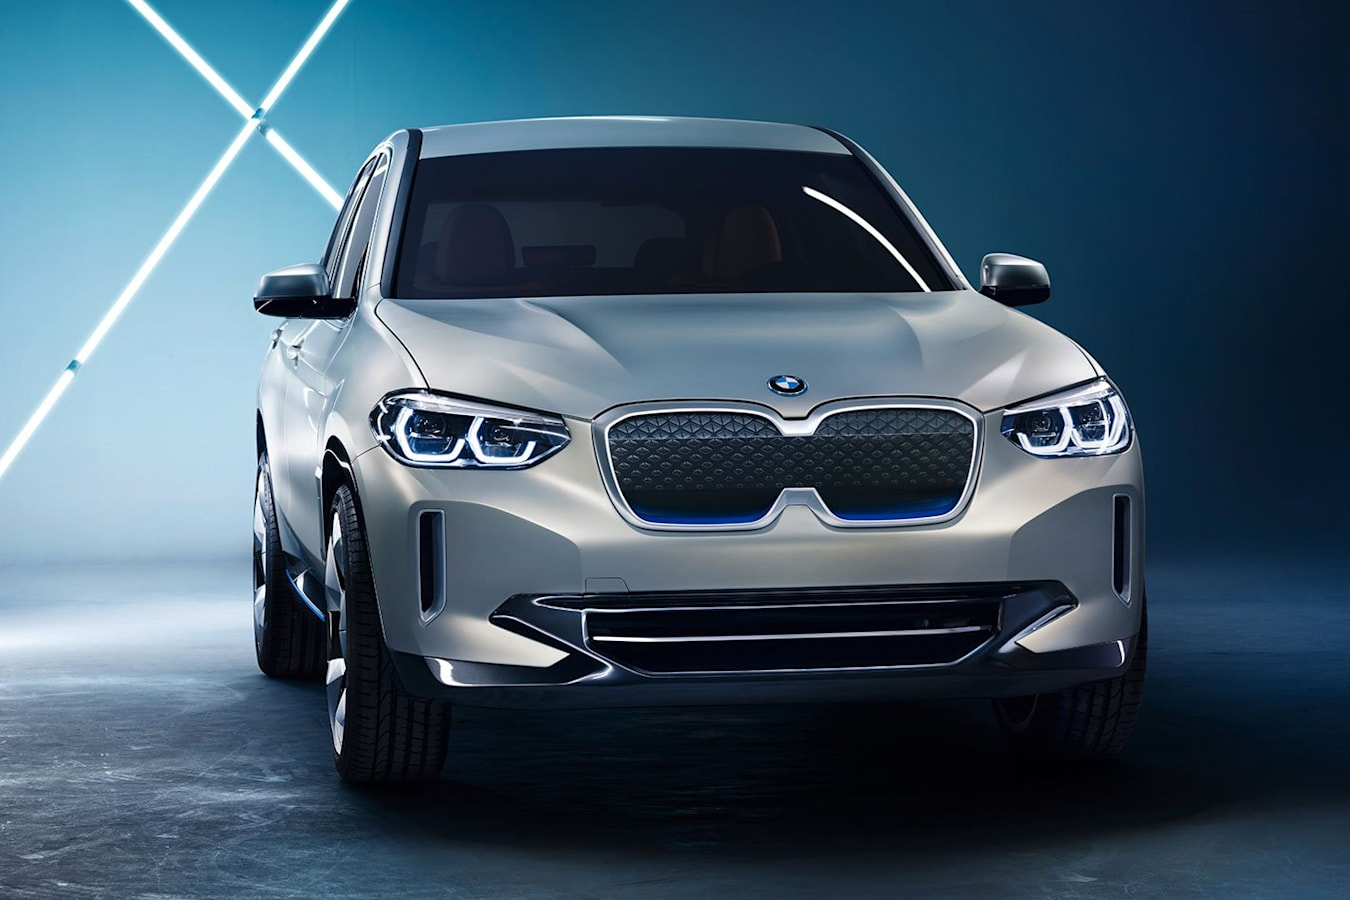 2018 BMW I X 3 Concept Front 34 Static Jpg